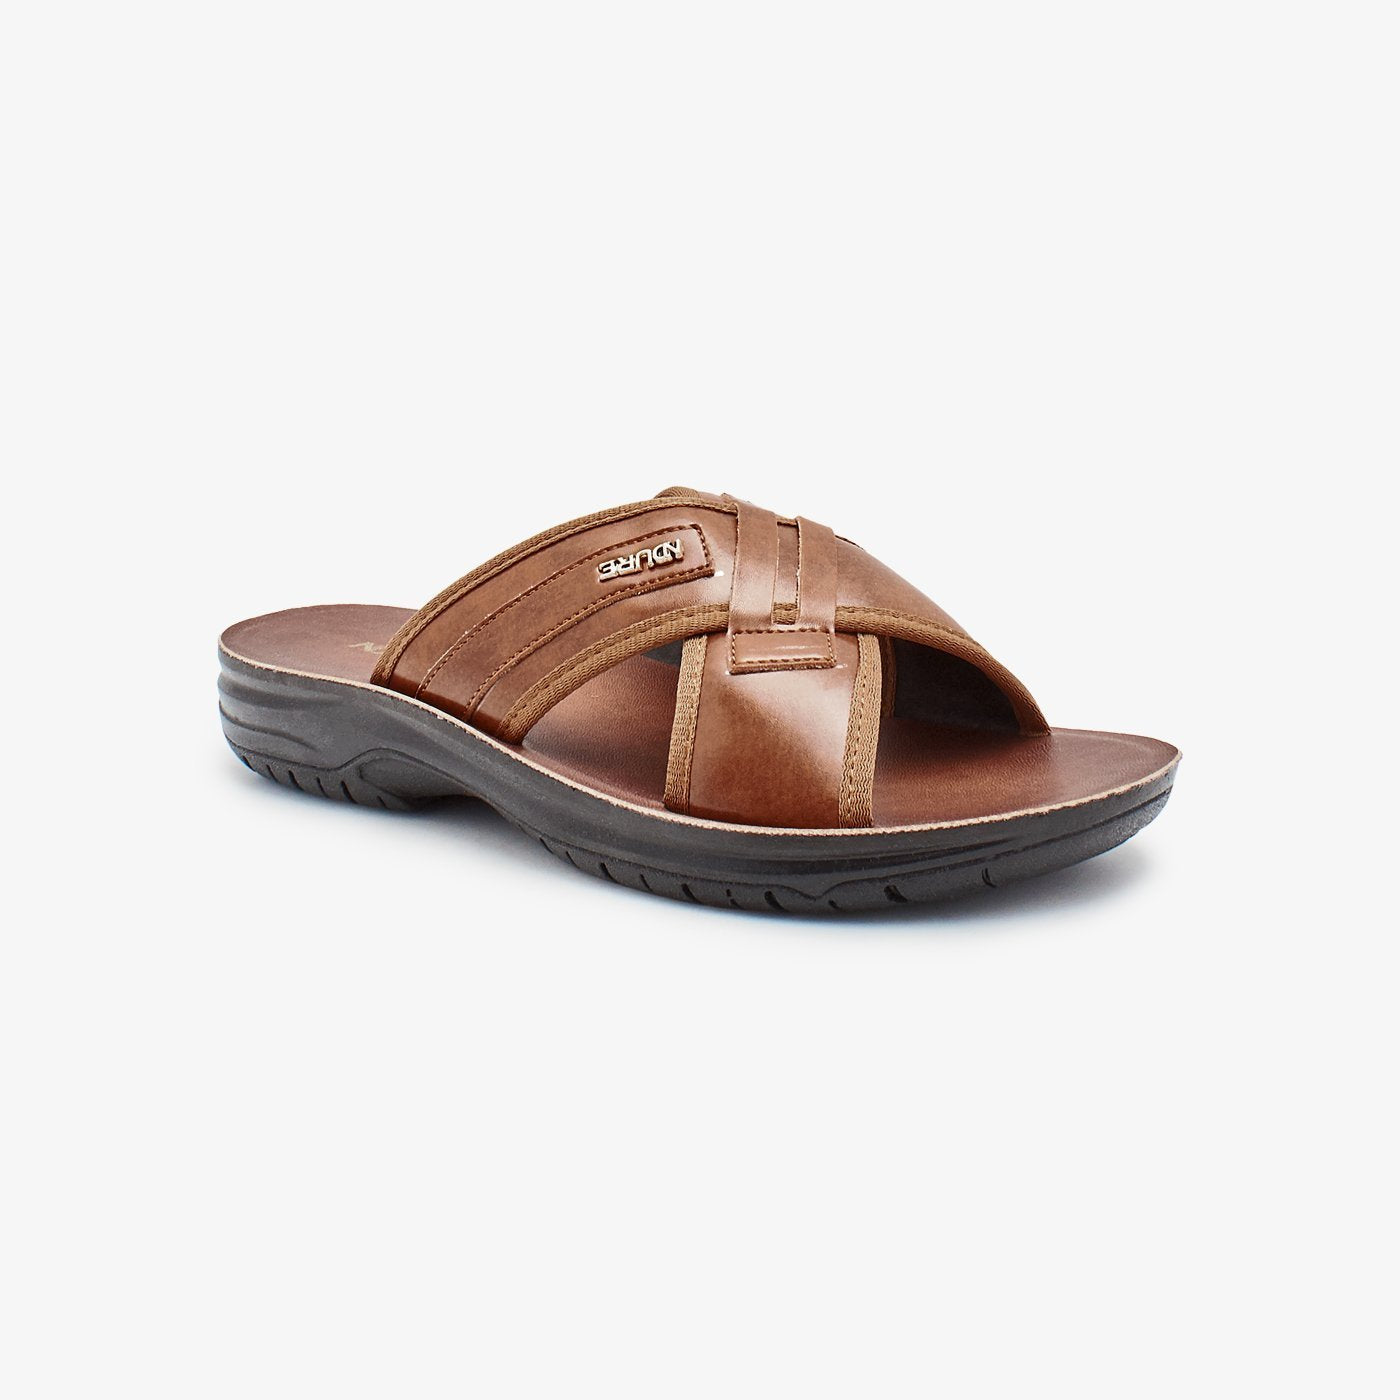 Cross Mens Chappals